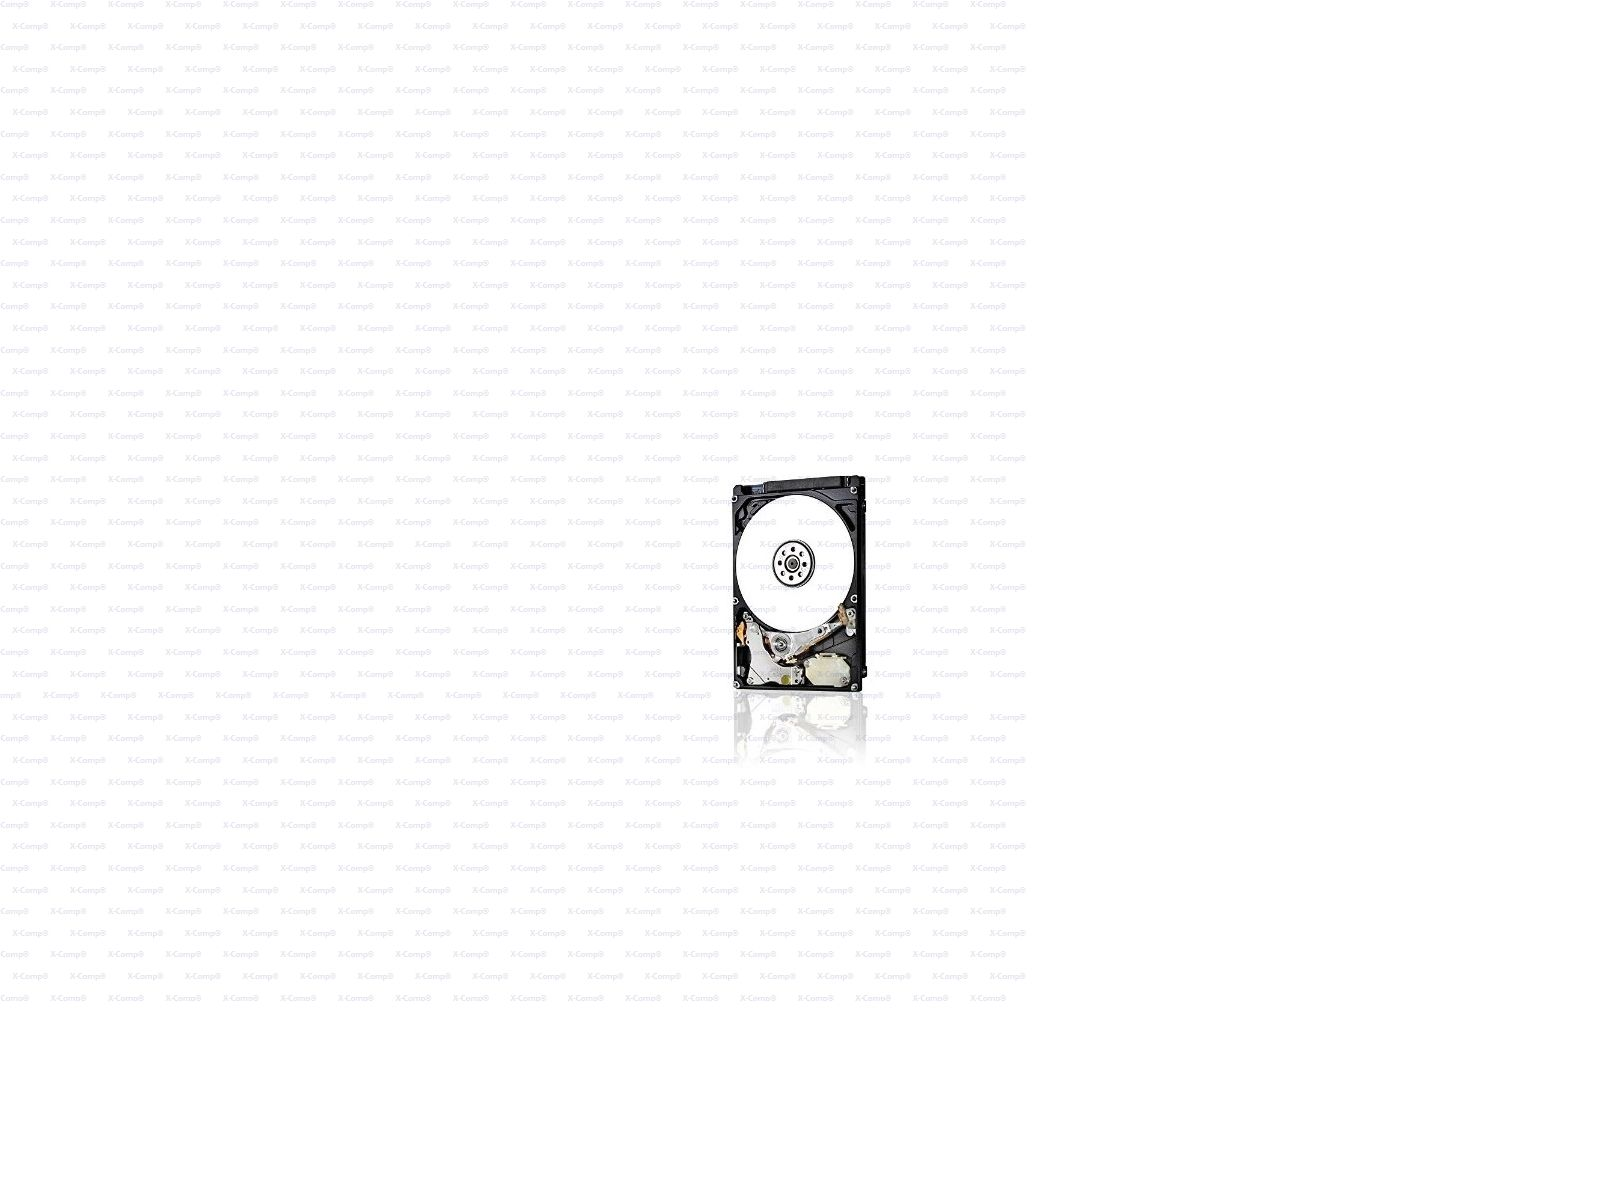 HDD 500GB WD Black 6Gb/s 7mm für Maxdata Artist Magic 6033